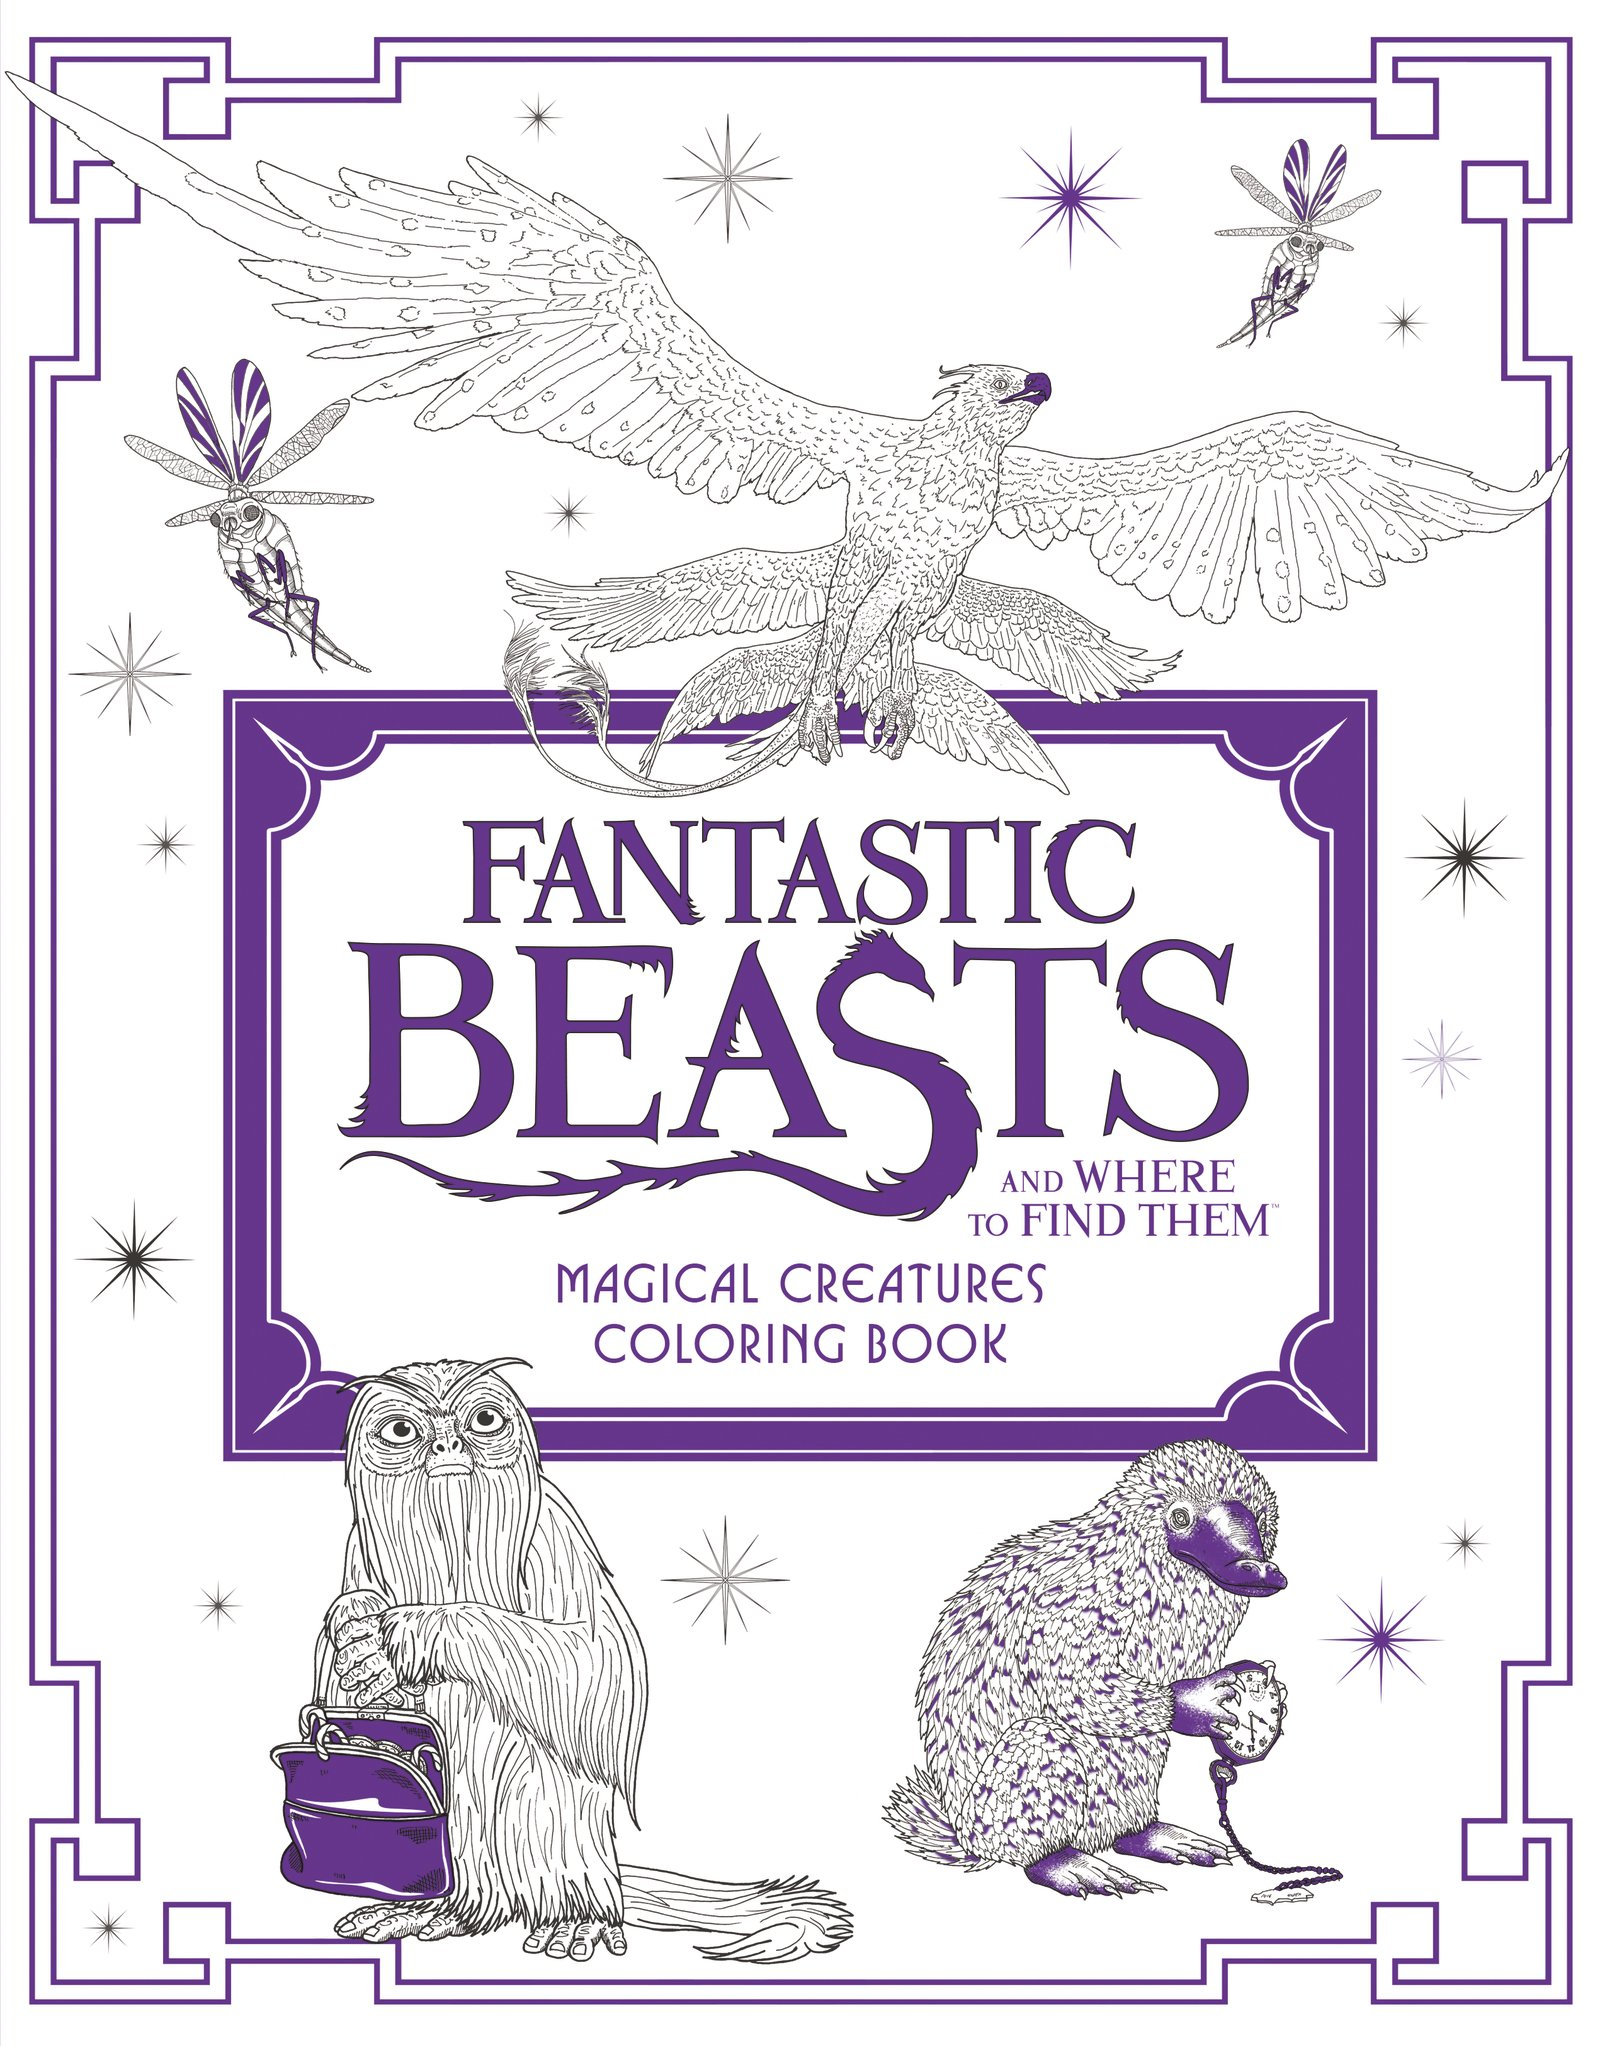 A fun magic coloring book amazon - Fantastic Beasts And Where To Find Them Magical Creatures Coloring Book Harpercollins Publishers 9780062571342 Amazon Com Books